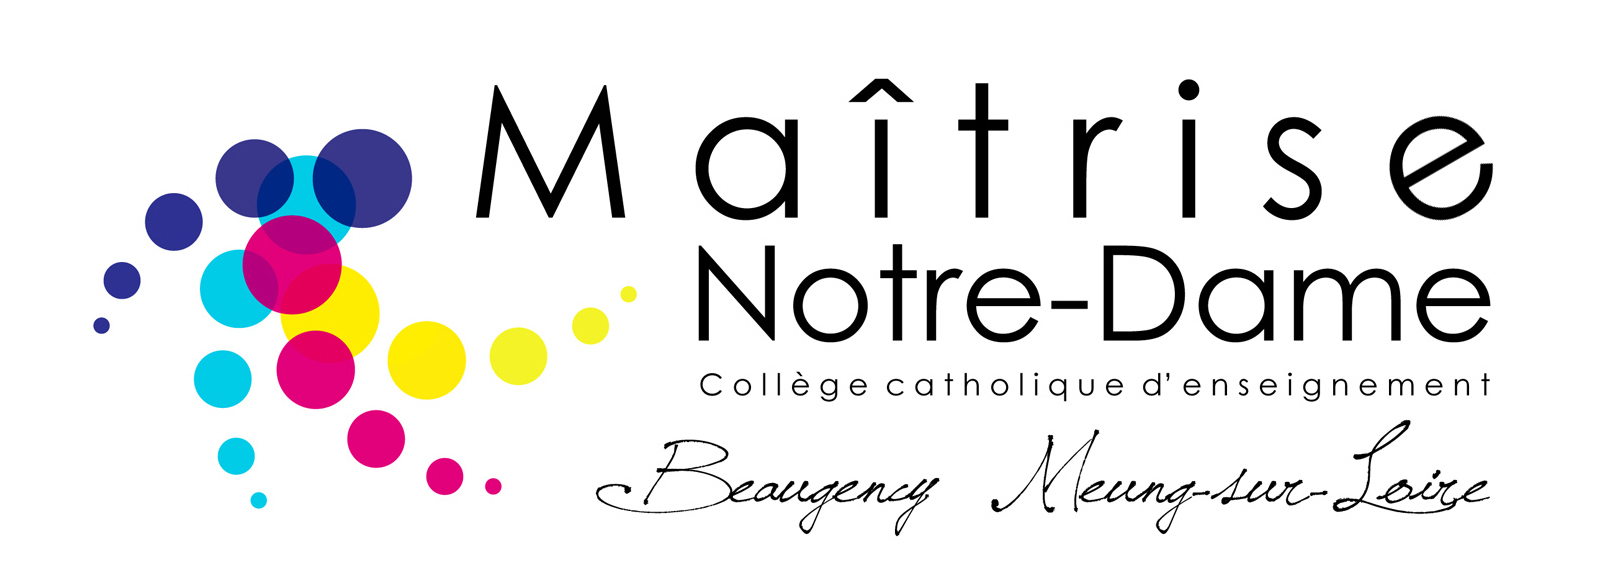 Collège Maîtrise Notre Dame - Beaugency - Meung